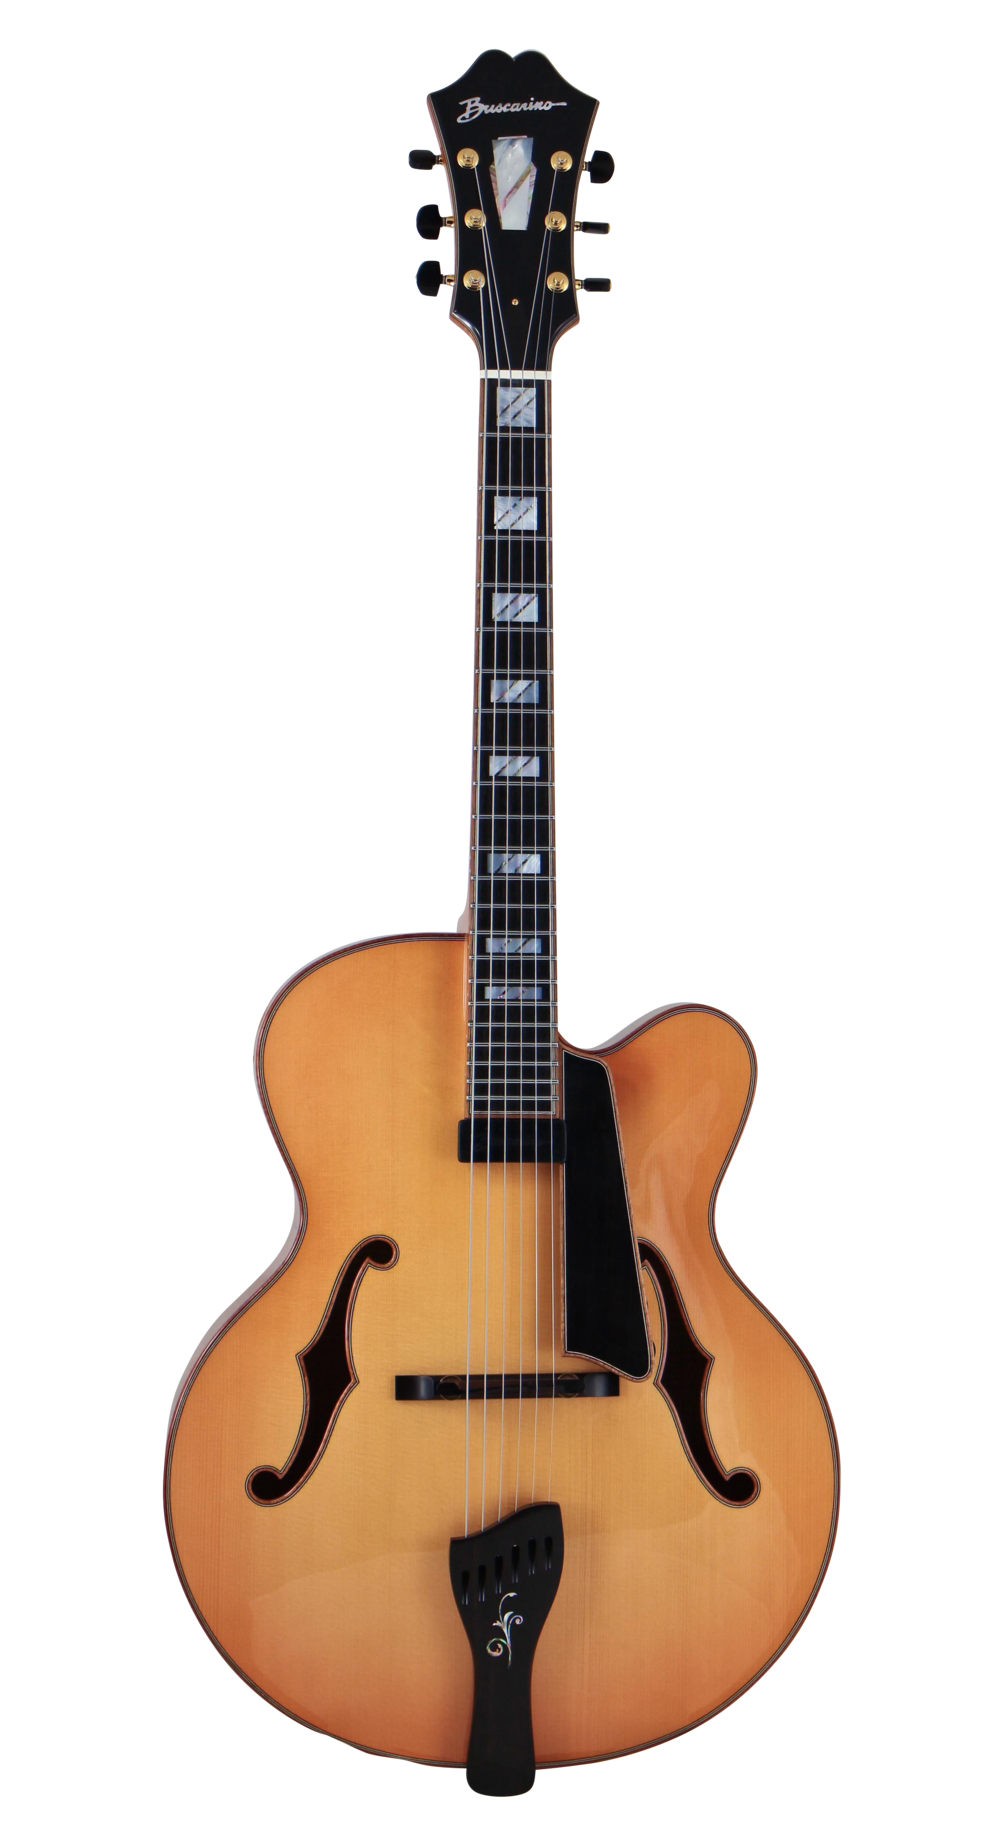 The Monarch Archtop